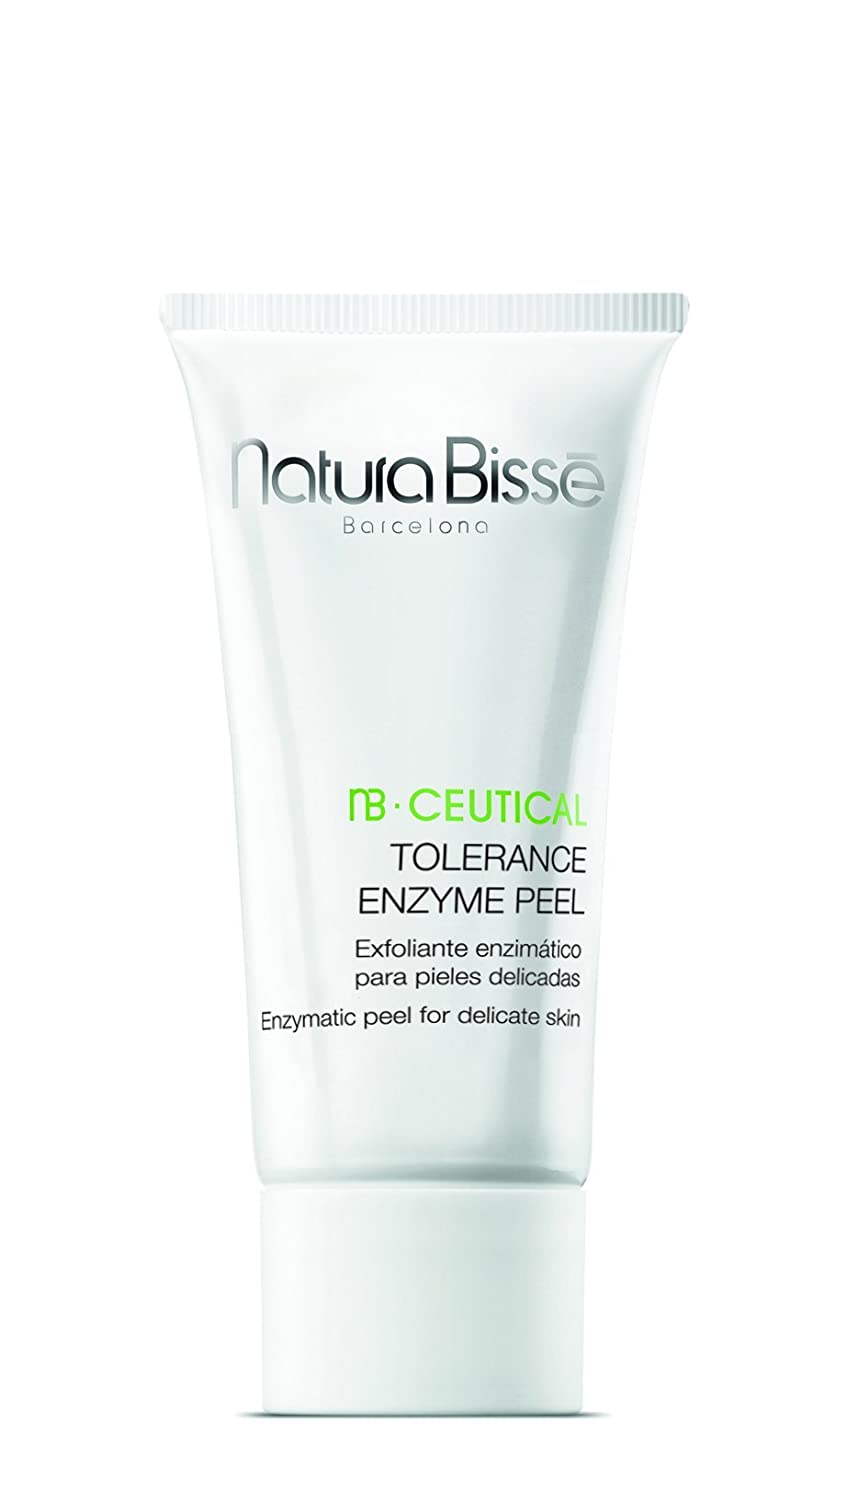 ナチュラビセ NB Ceutical Tolerance Enzyme Peel - For Delicate Skin 50ml   B01CT4M06Q